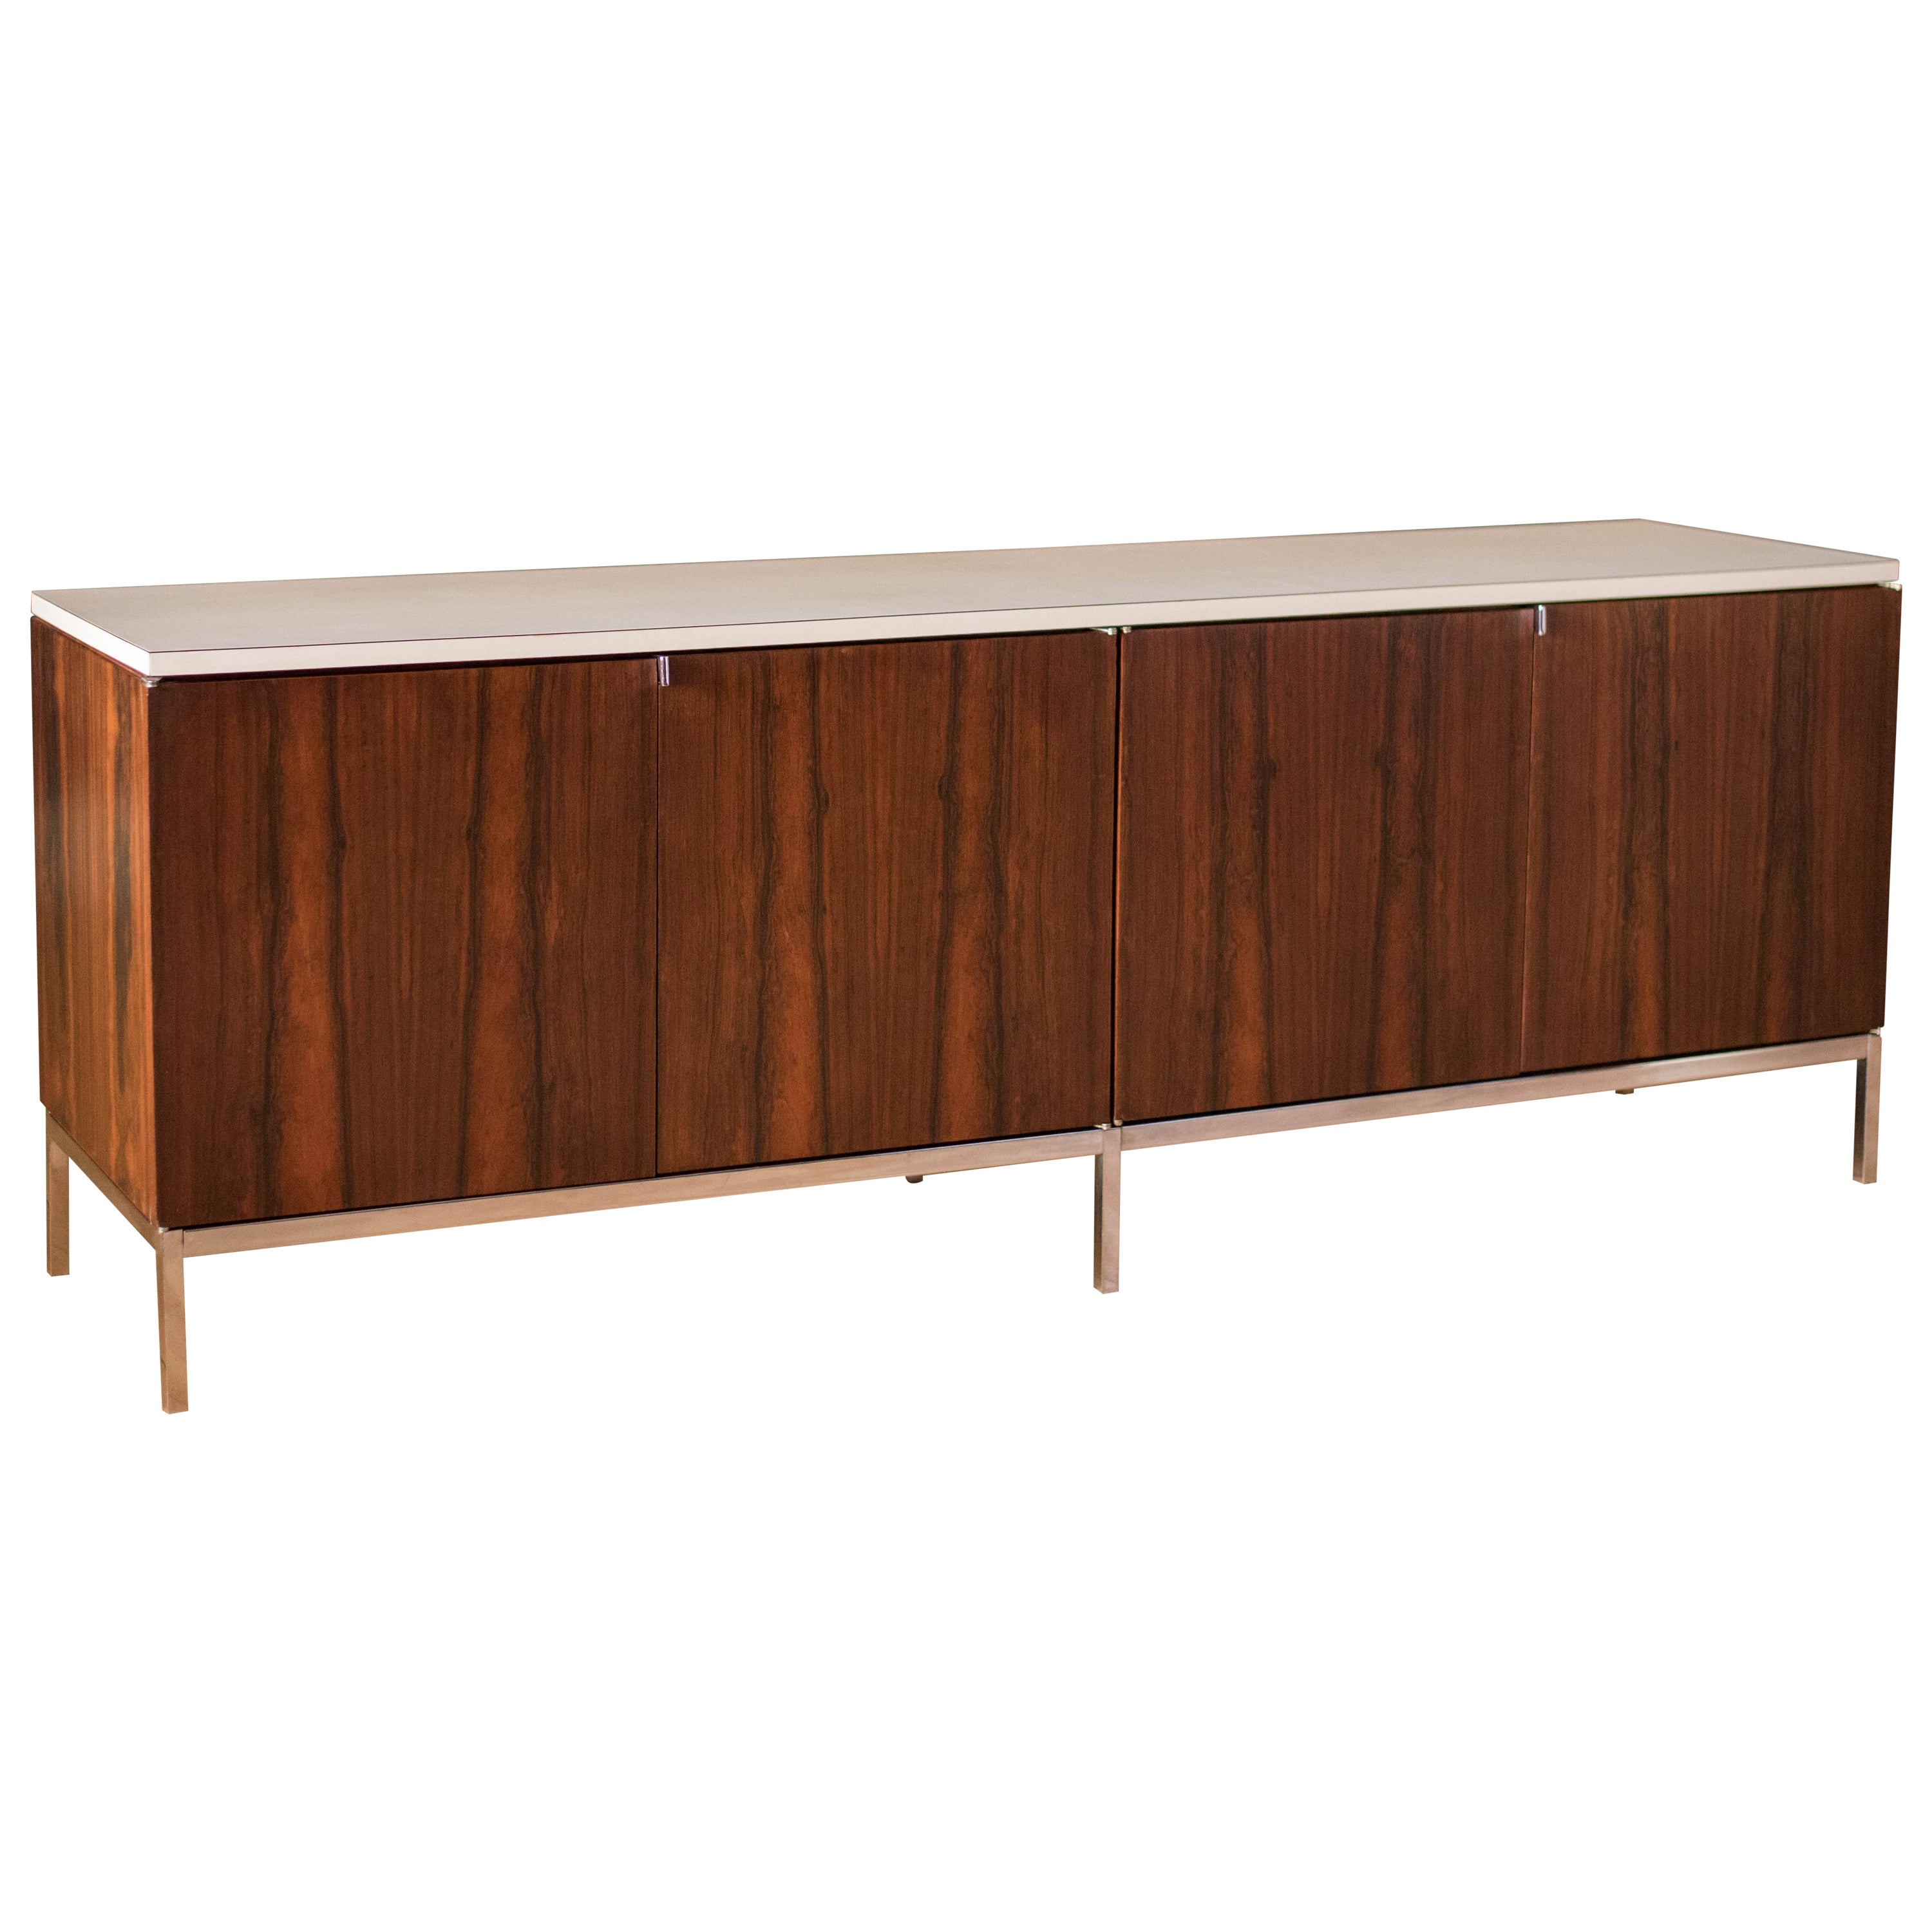 Mid-Century Modern Rosewood Credenza by Florence Knoll